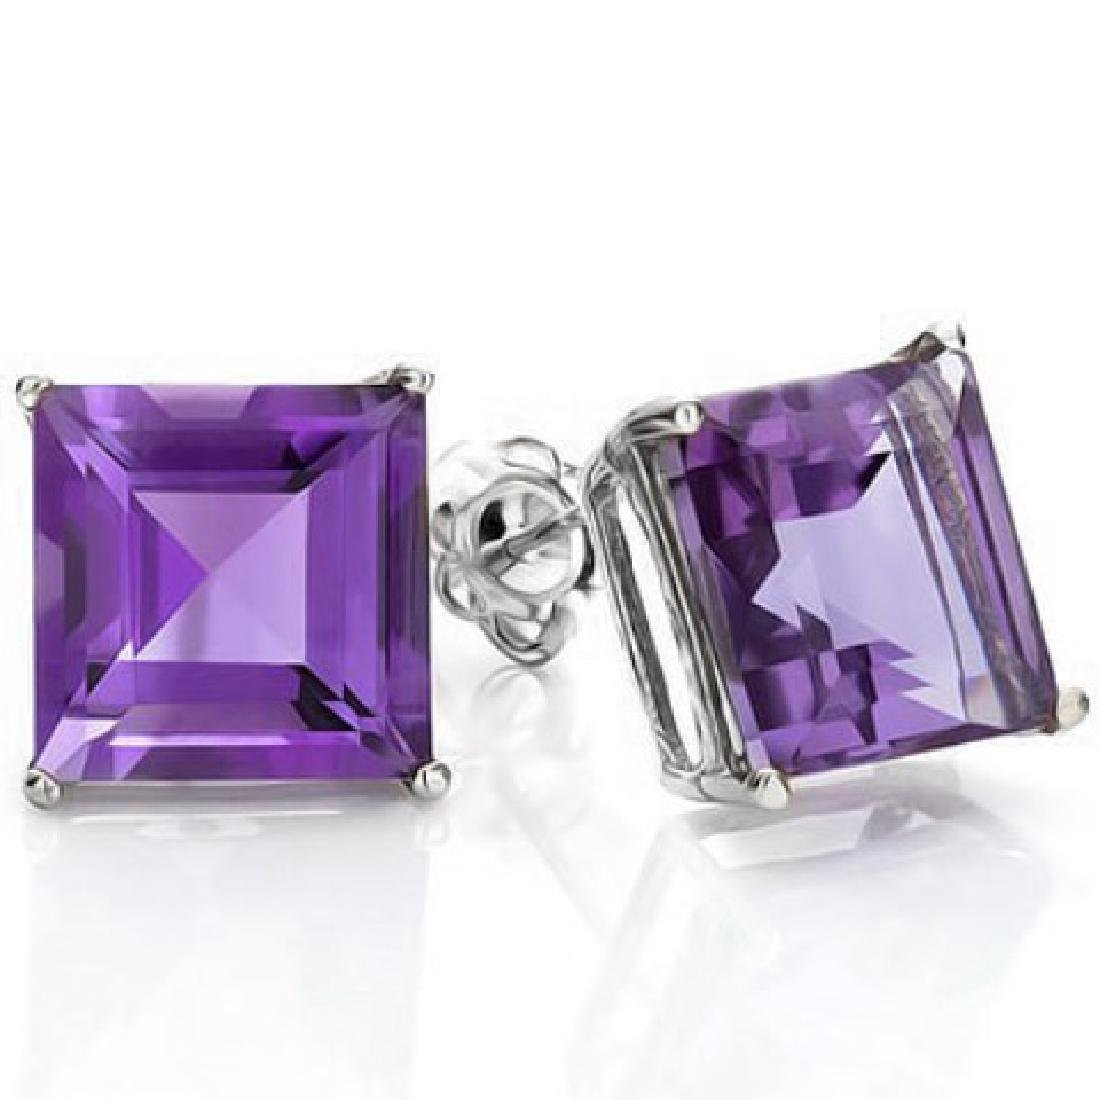 2CT PRINCESS CUT LAVENDAR AMETHYST EARRINGS